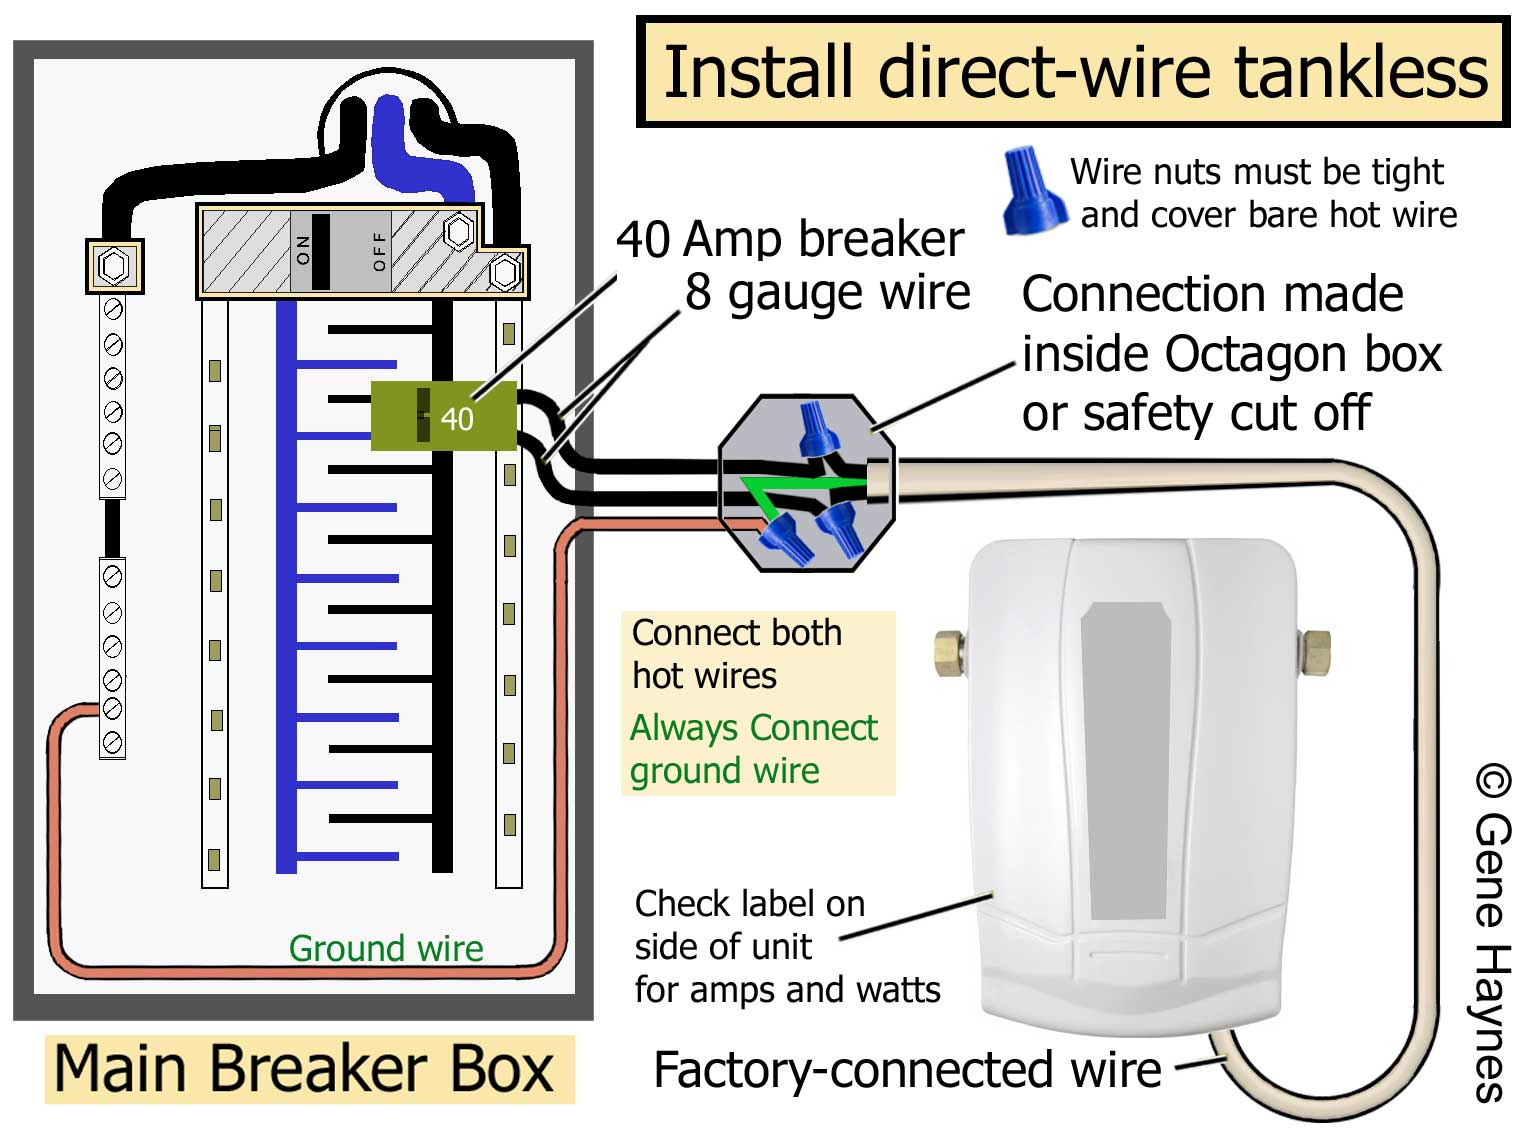 How To Wire Tankless Electric Water Heater Wiring Breaker Box Read Rating Plate On Side Of Unit For Amps And Watts Connect From Factory Pigtail Inside Octagon Using Connectors